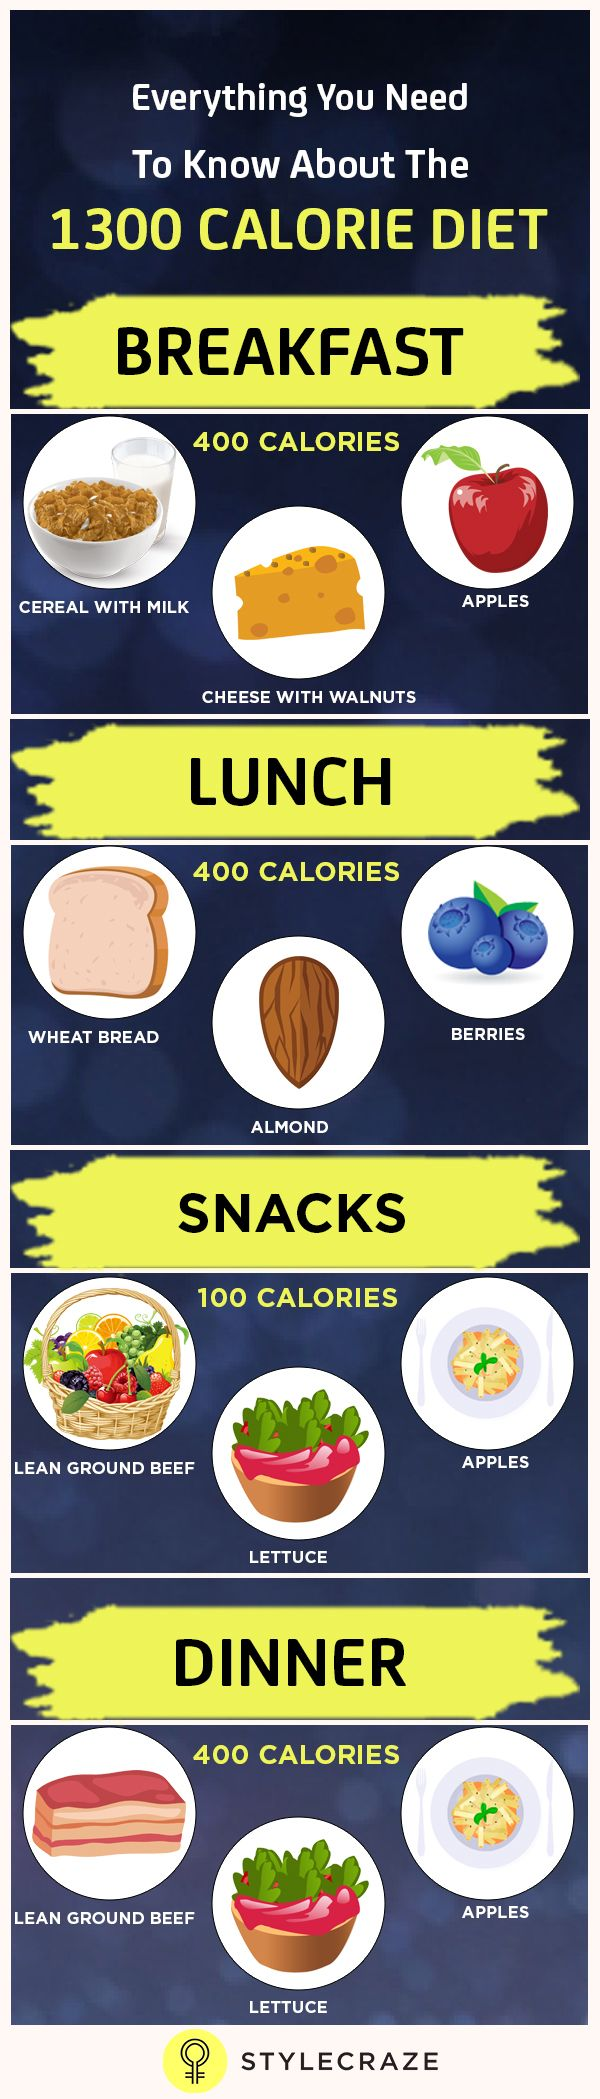 The 1300 calorie diet could prove to be a low calorie diet for active people, particularly men. It is recommended to consult a physician before getting on to the 1300 calorie diet.